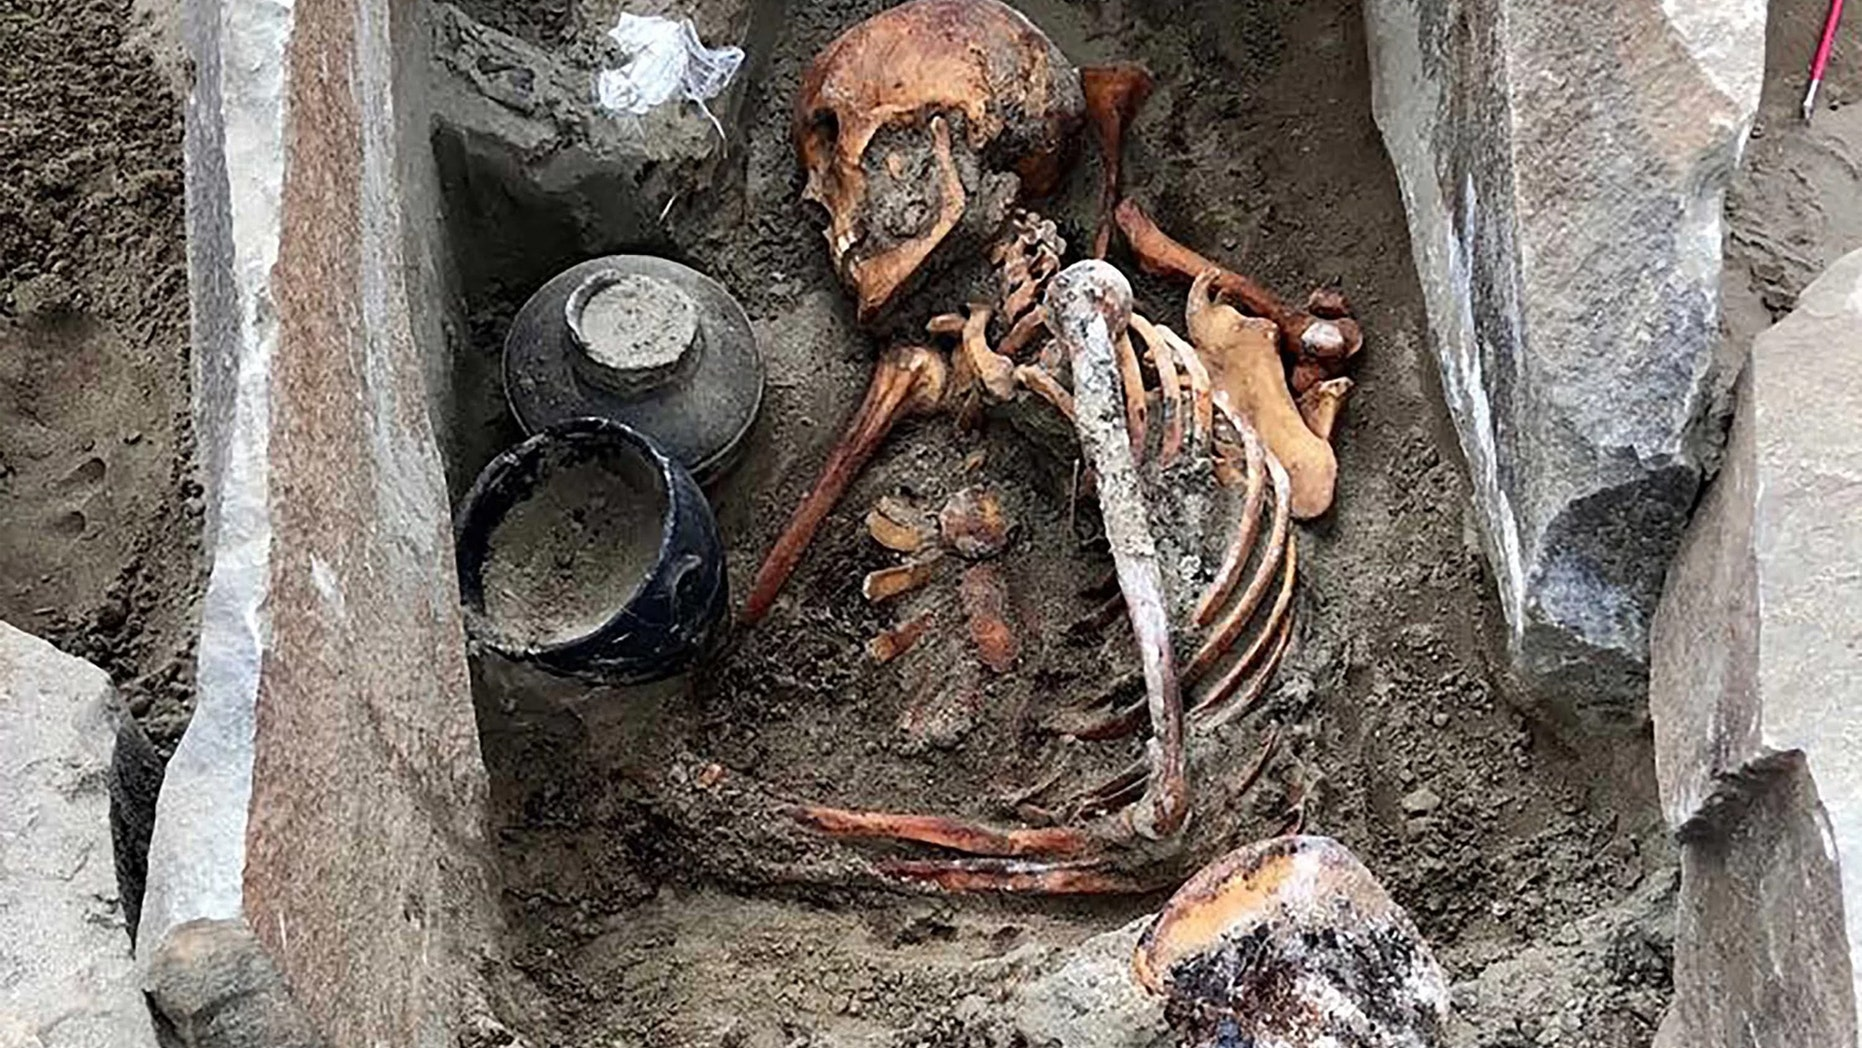 The 2,000-year-old mummy, dubbed Sleeping Beauty, was buried in silk clothes and a beaded belt with a jet buckle. Credit: Marina Kilunovskaya/The Siberian Times